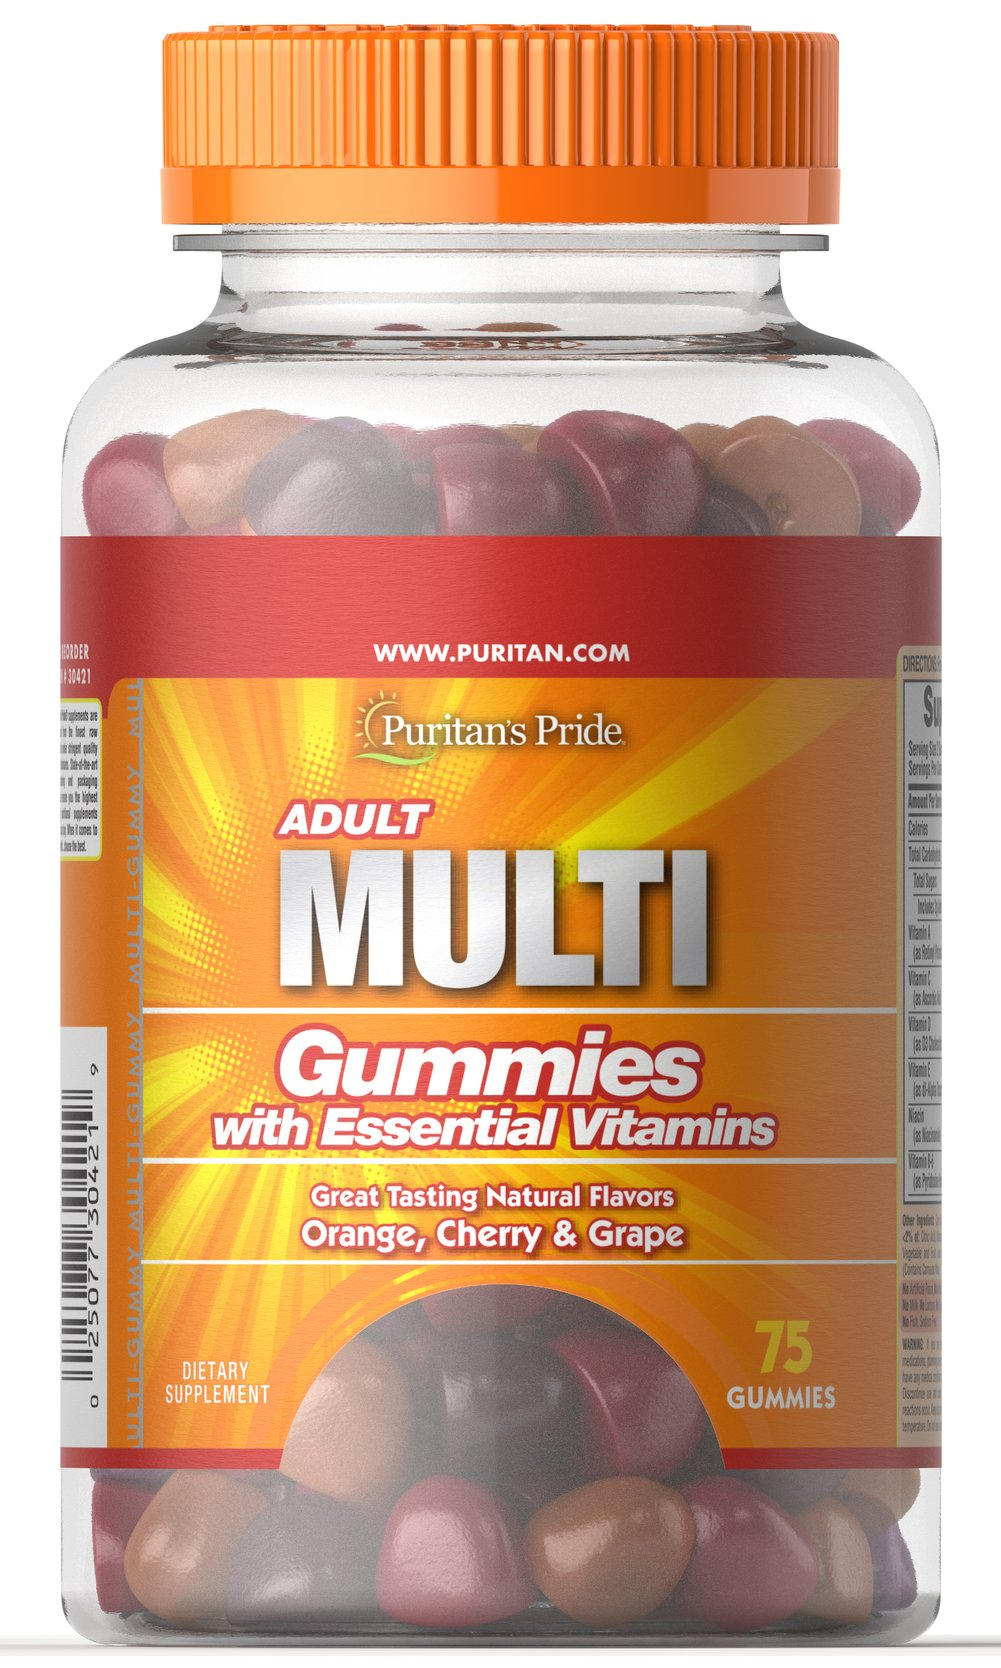 Adult Multivitamin Gummy <p>An adult multivitamin that's delicious and fun to take</p><p>Vitamin and mineral support for your heart, eyes, bones and joints**</p><p>Great-tasting natural flavors include orange, cherry and grape</p><p>No artificial flavors. <br /></p> 75 Gummies  $21.99